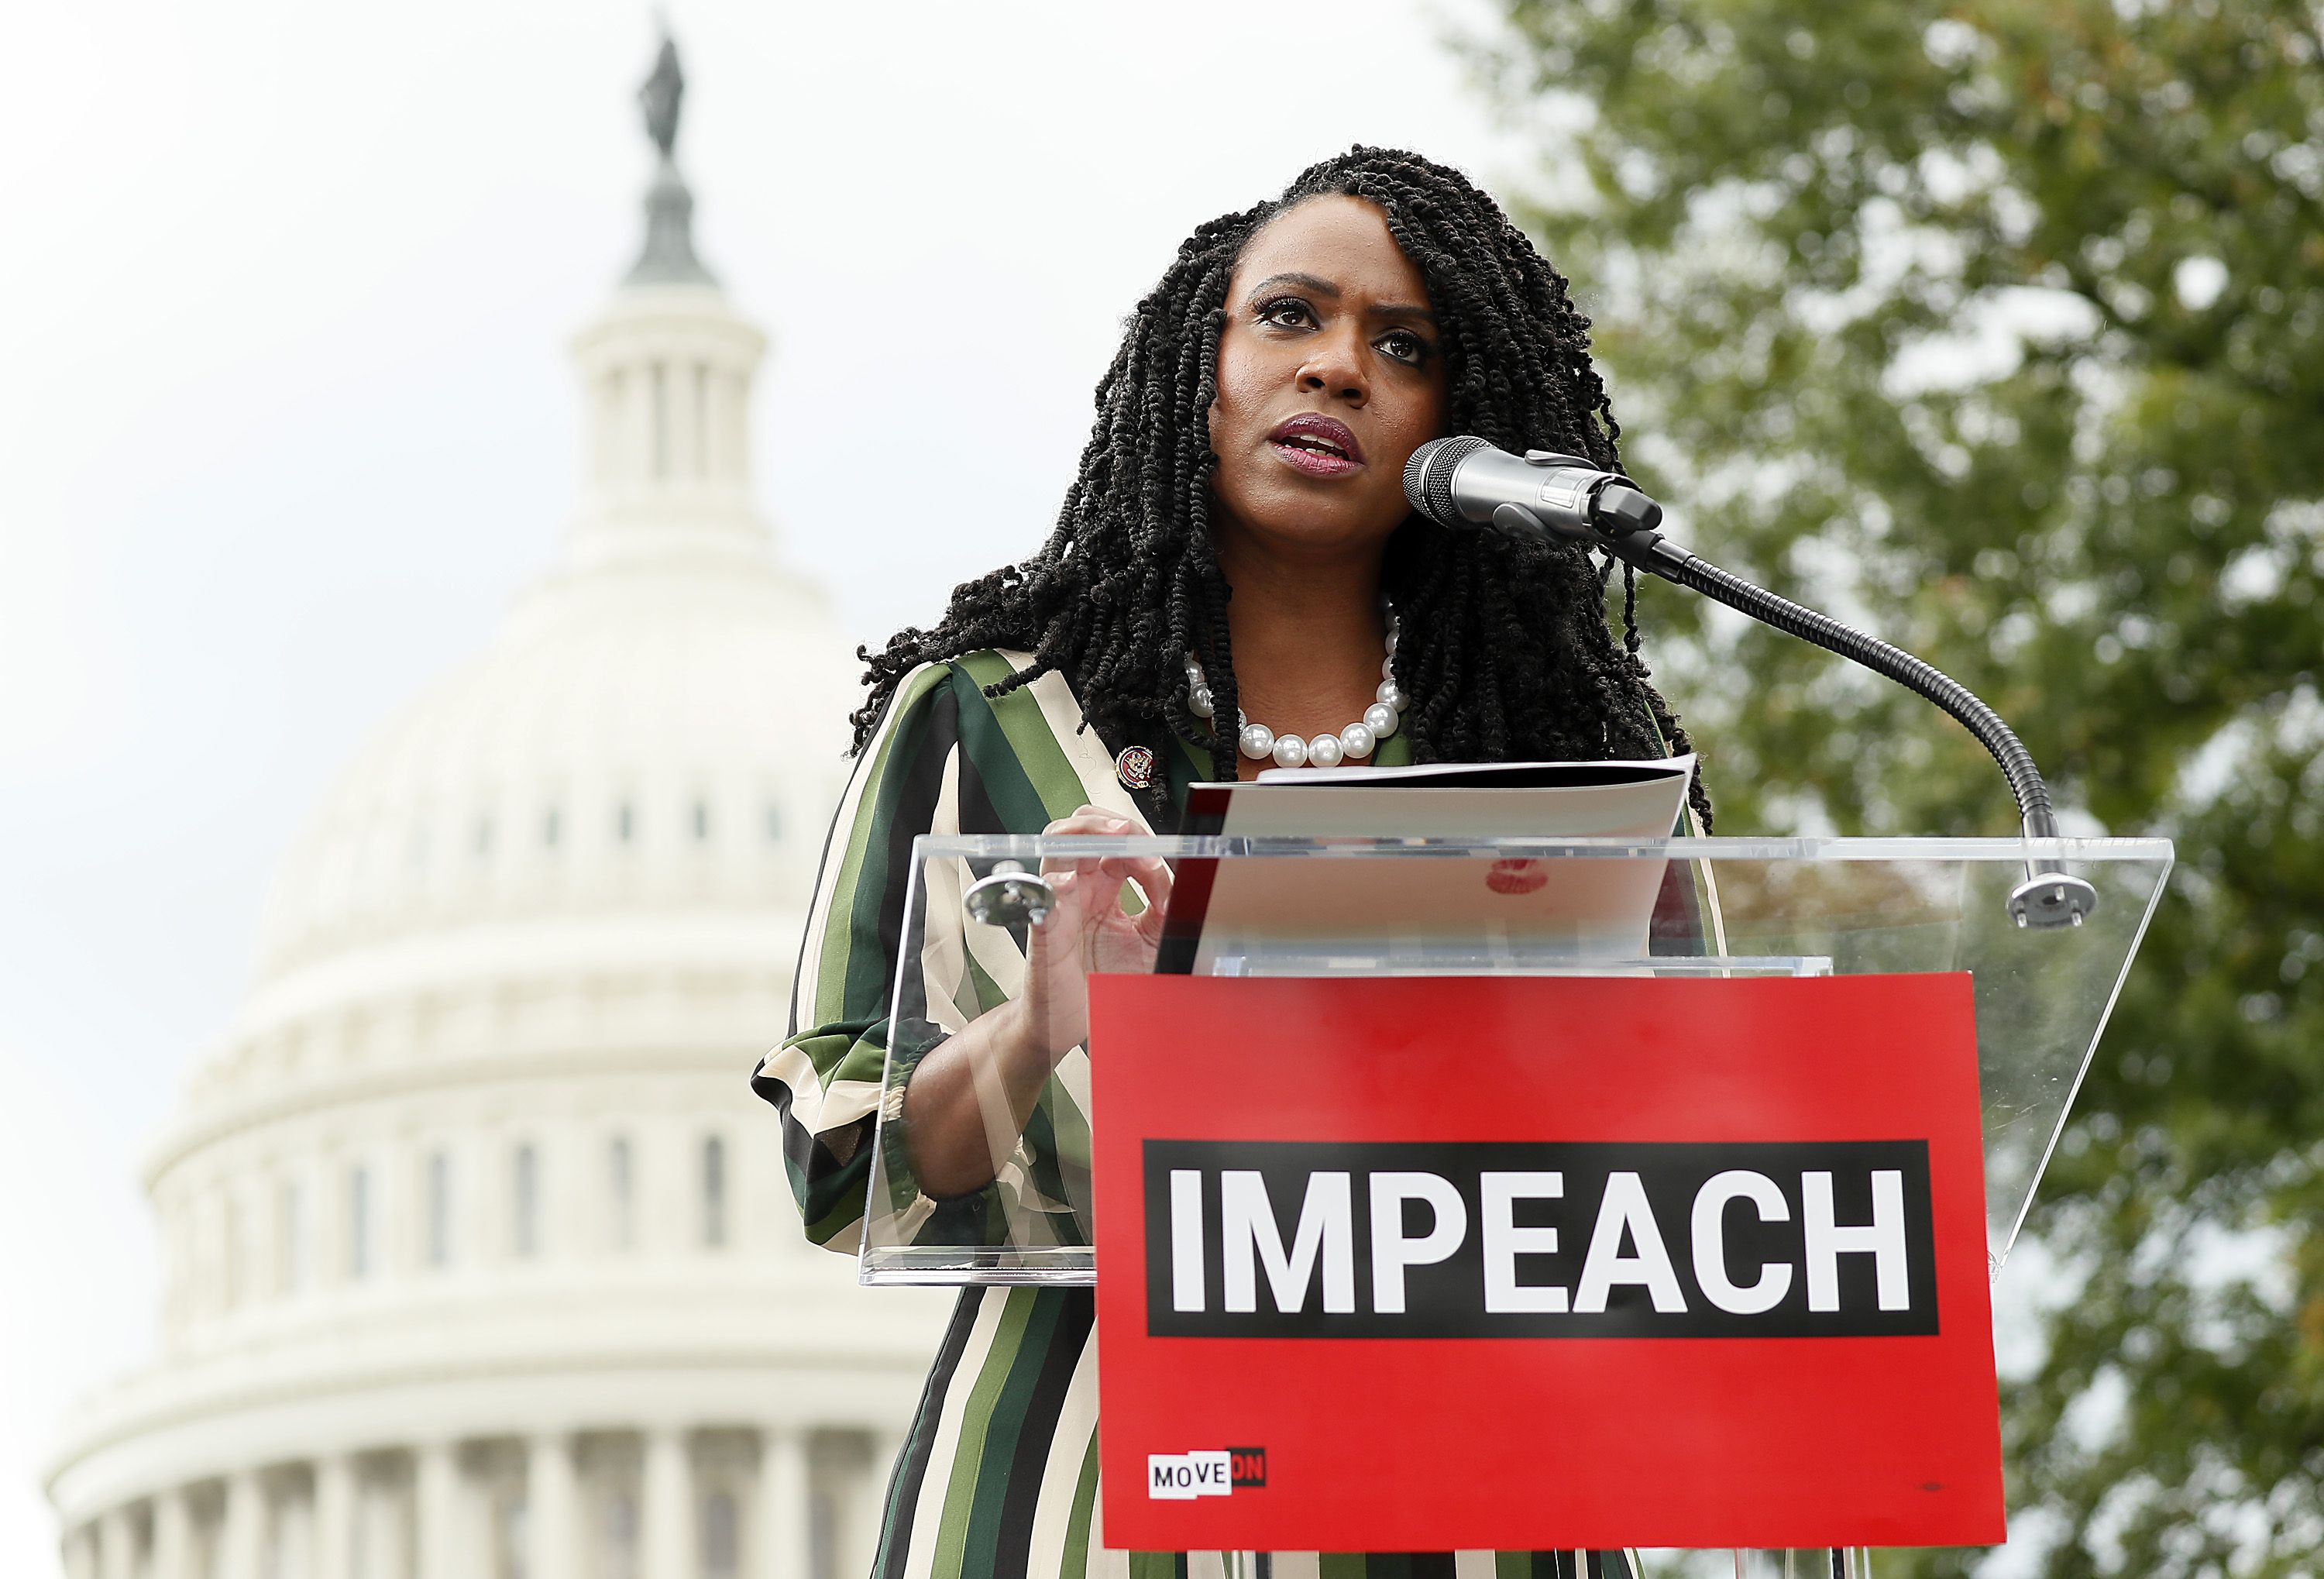 Representative Ayanna Pressley Speaks Candidly About Having Alopecia in a Moving Video